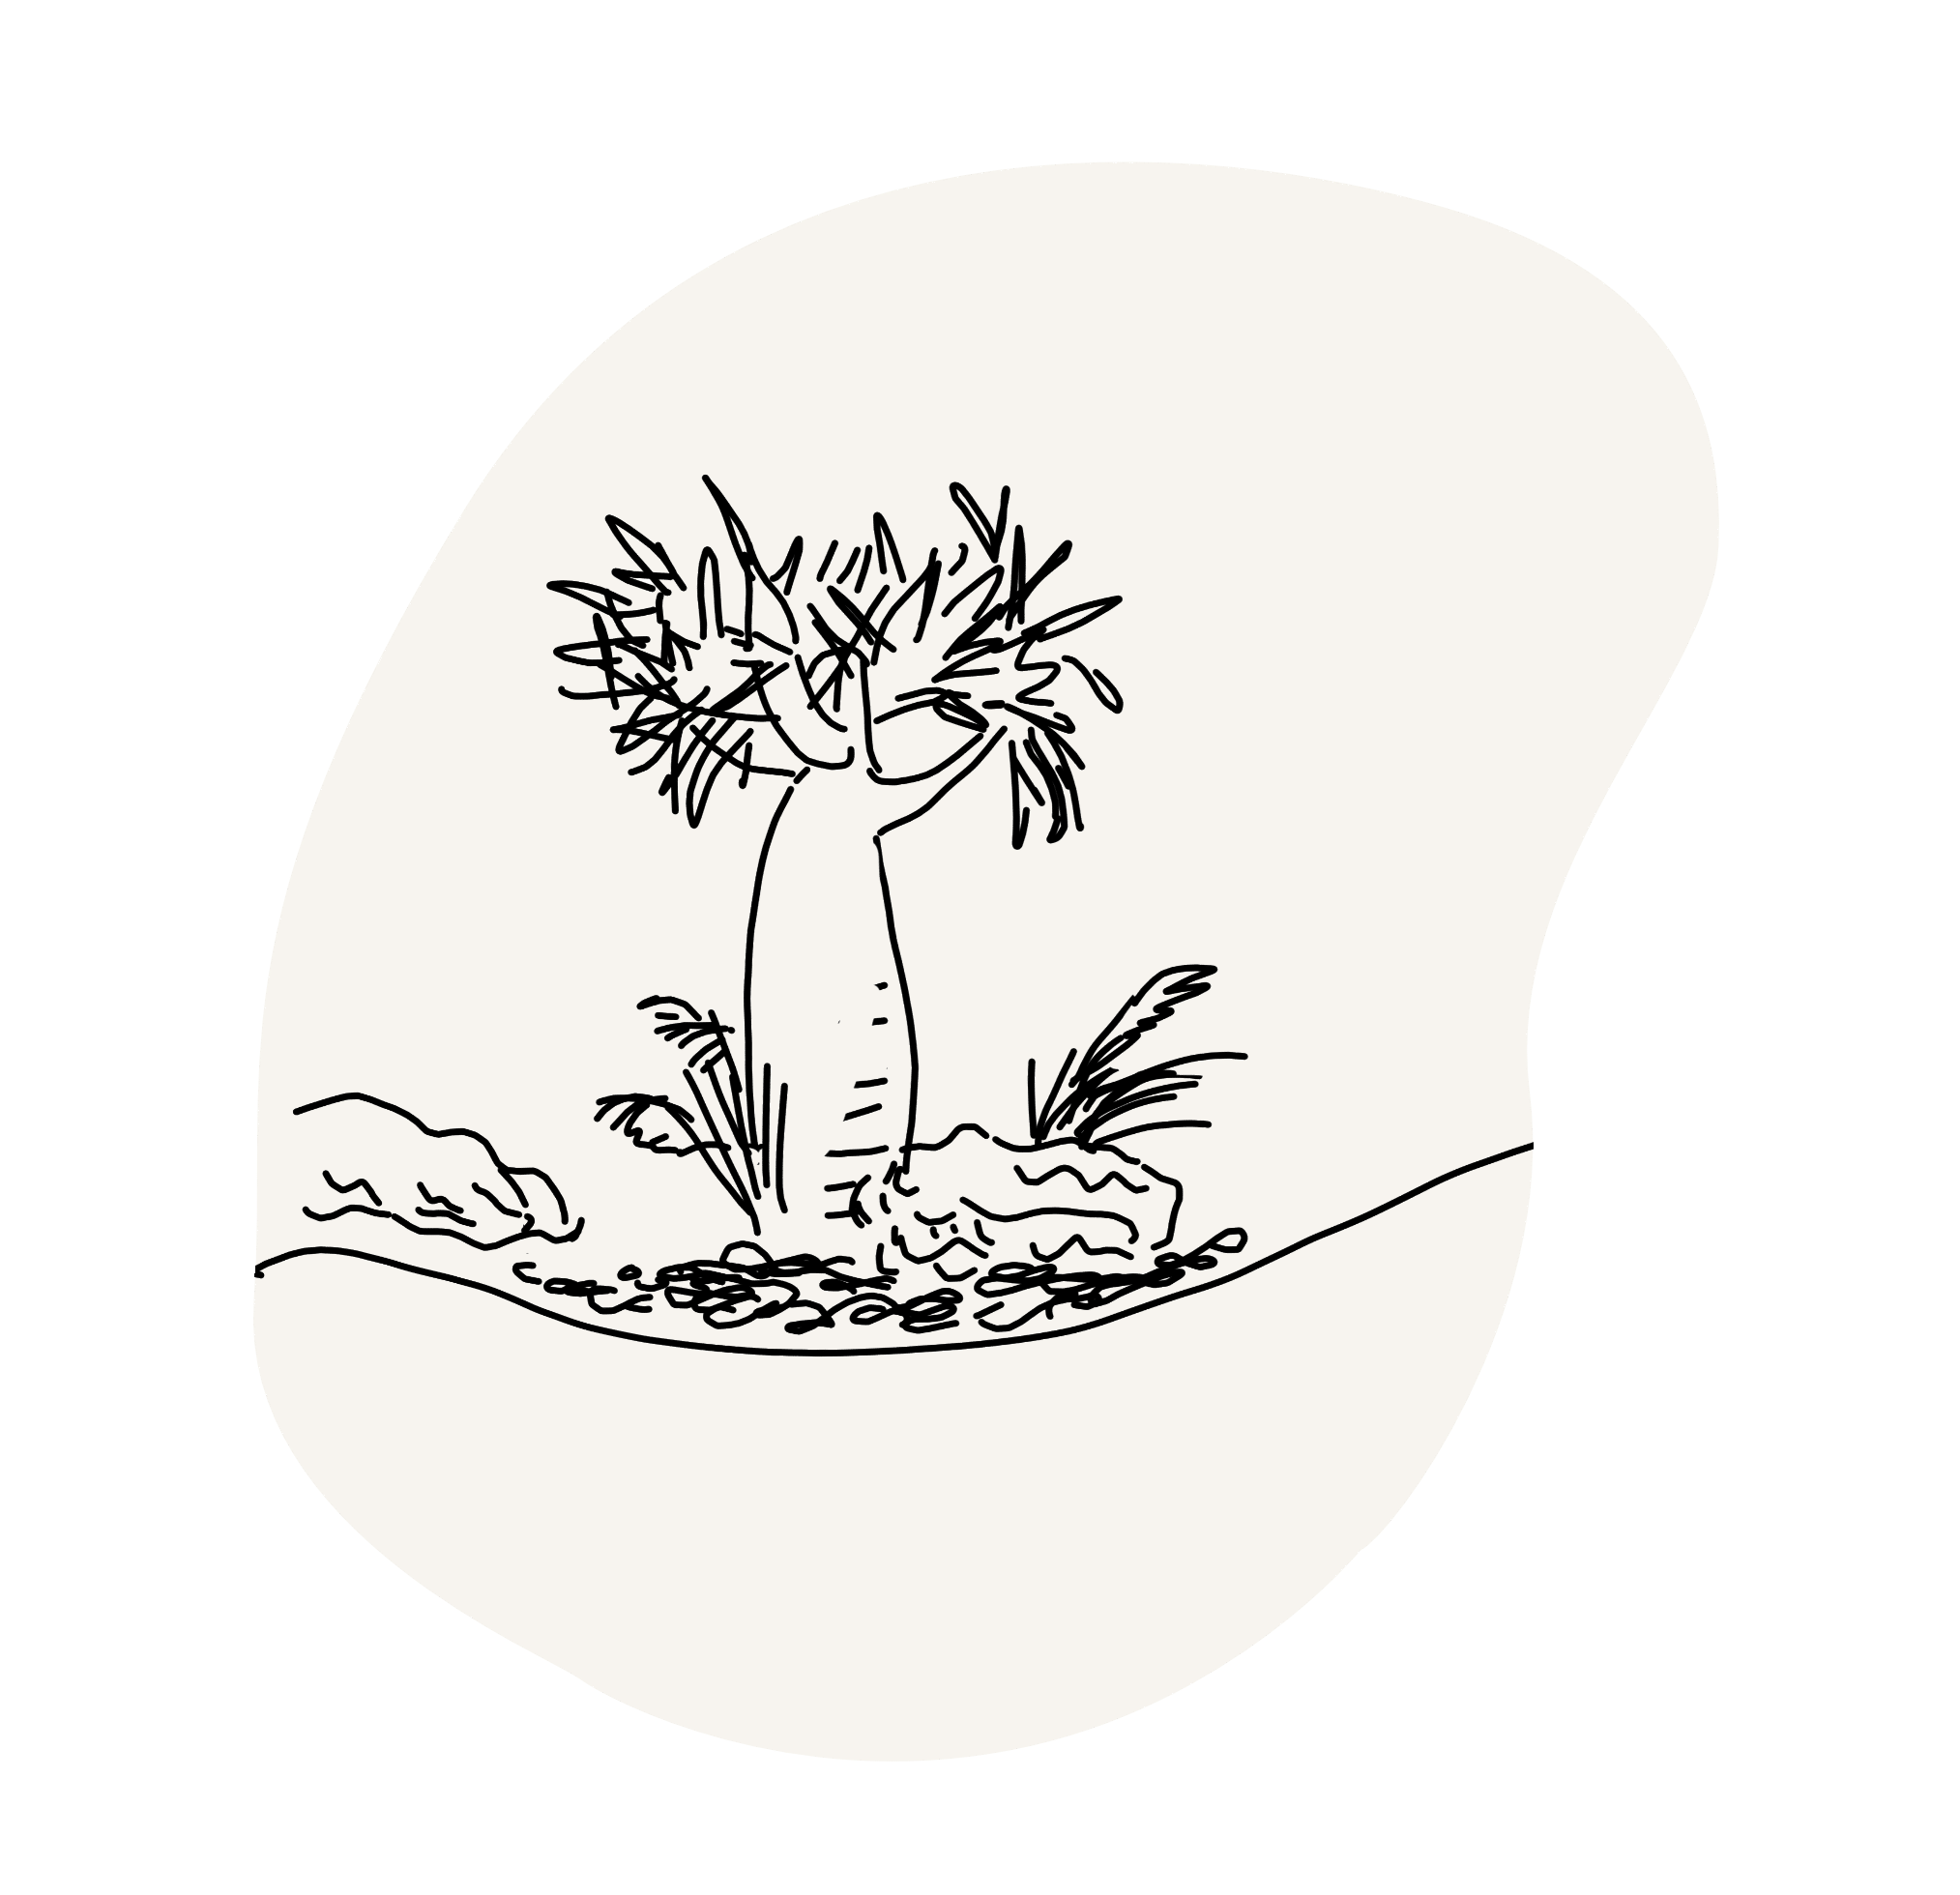 Black line drawing of garden on white